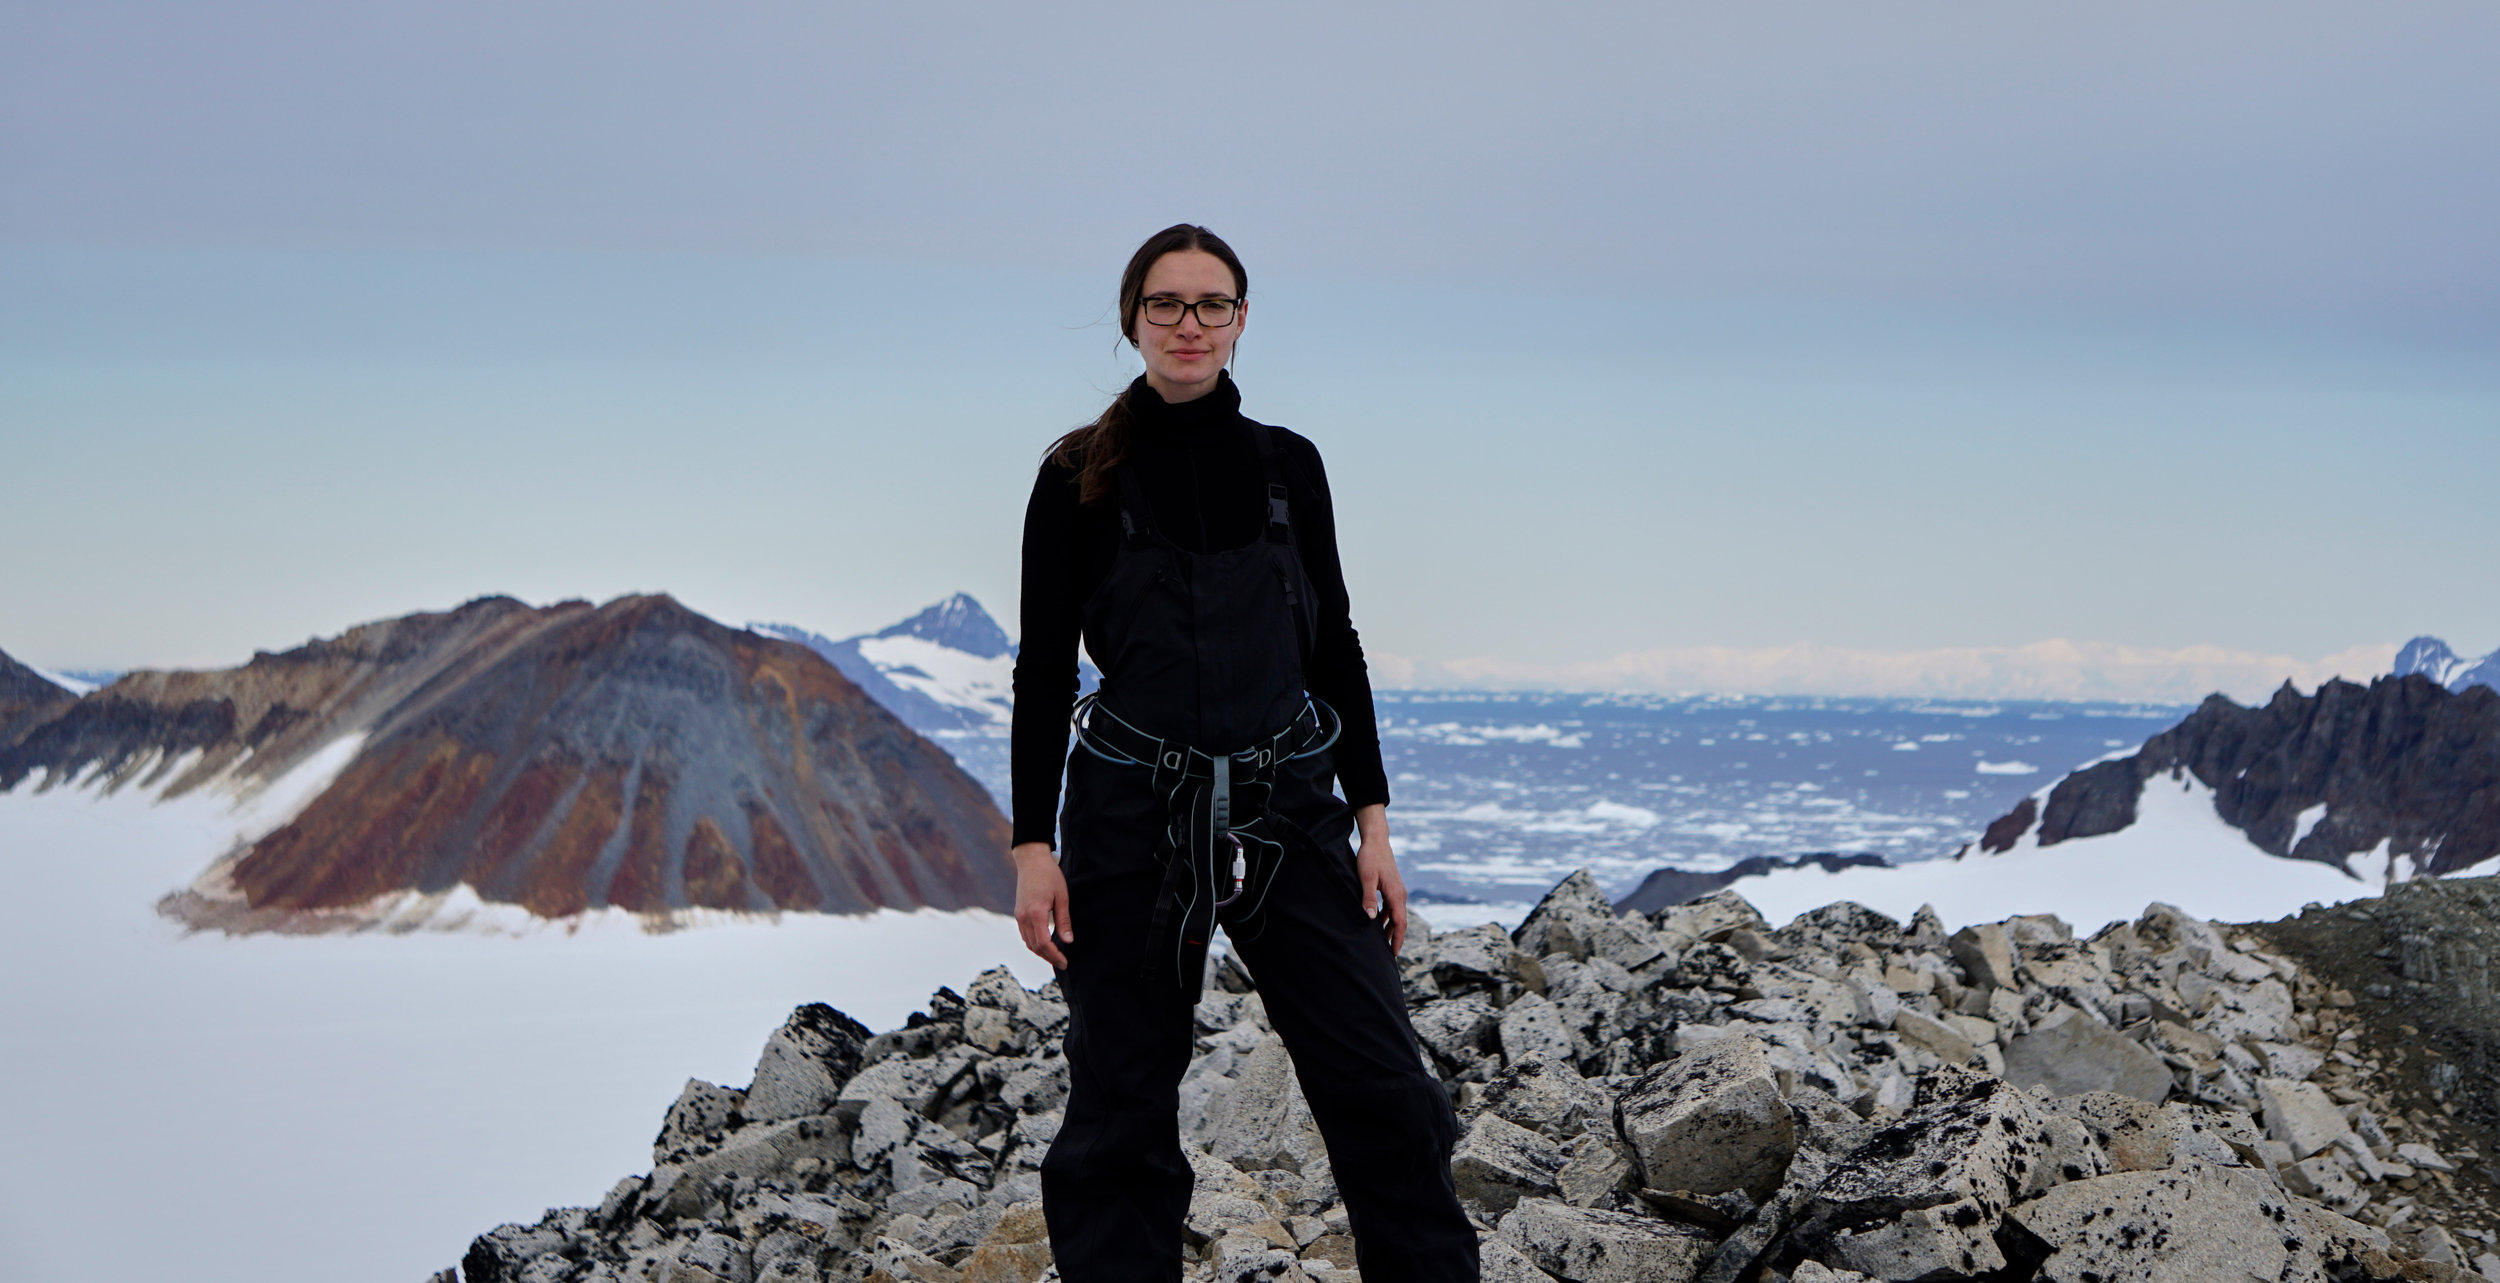 At the Rothera British Research Station in Antarctica